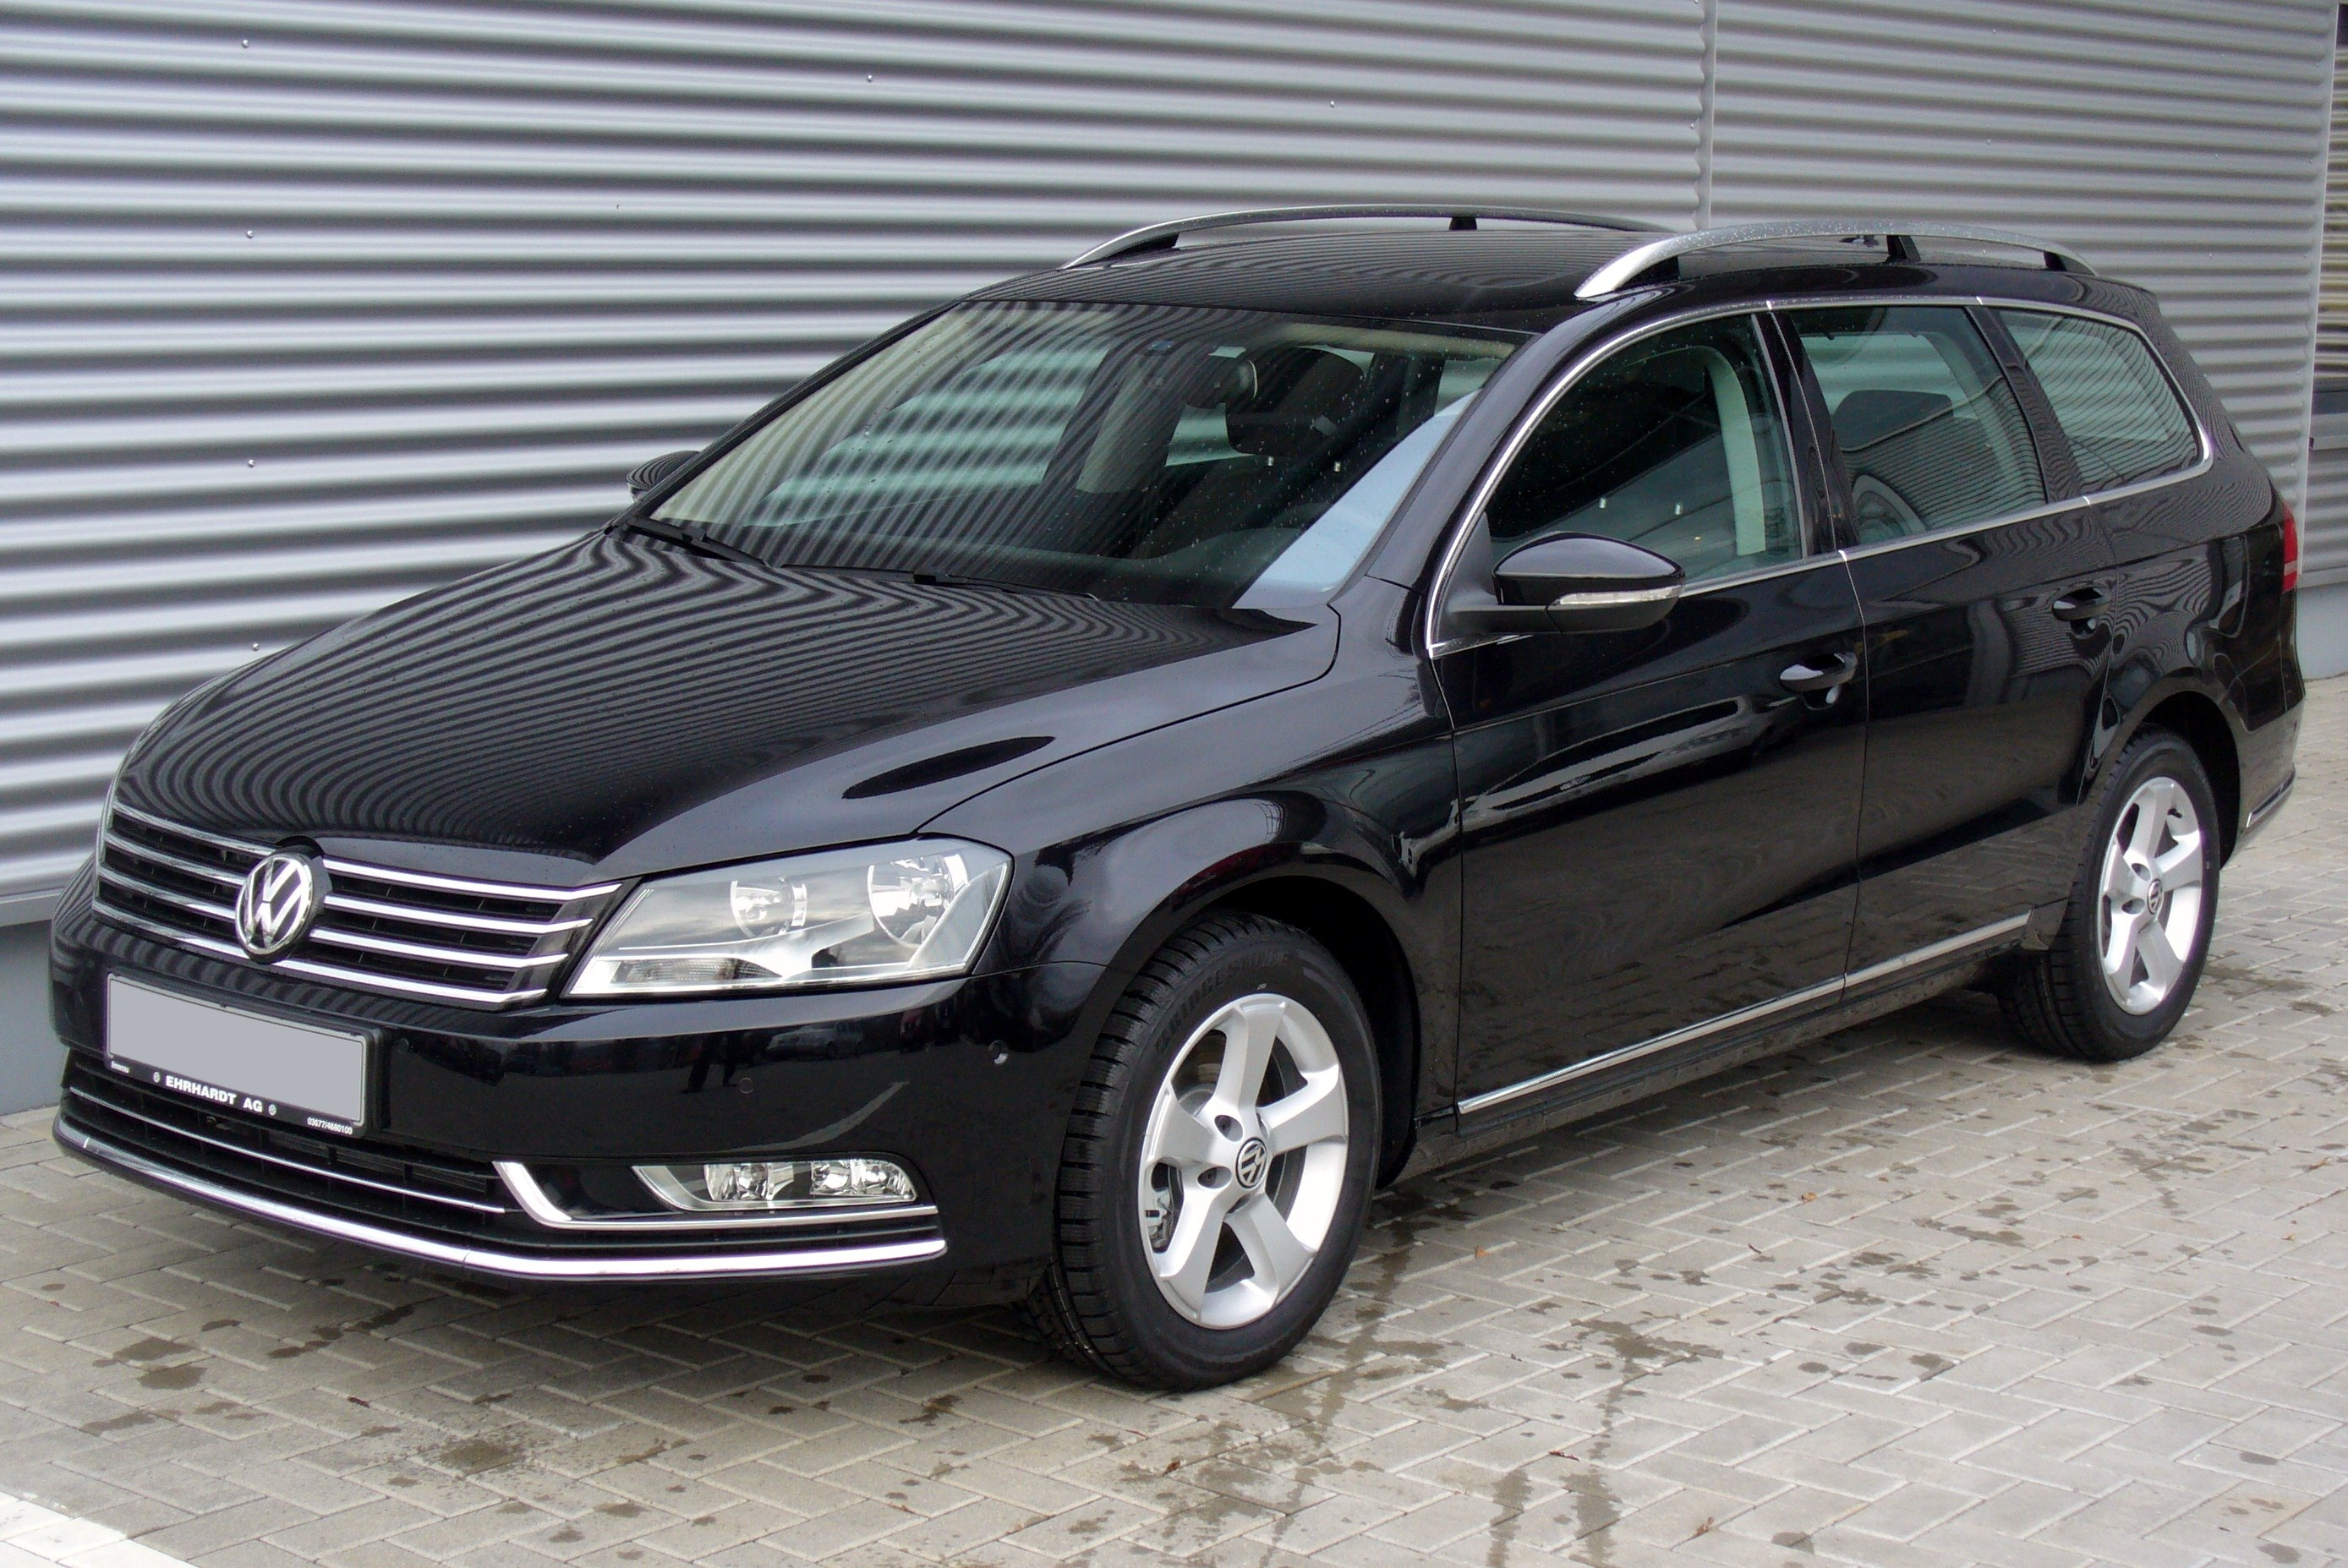 2010 volkswagen passat variant 2 0 tdi dsg related infomation specifications weili automotive. Black Bedroom Furniture Sets. Home Design Ideas